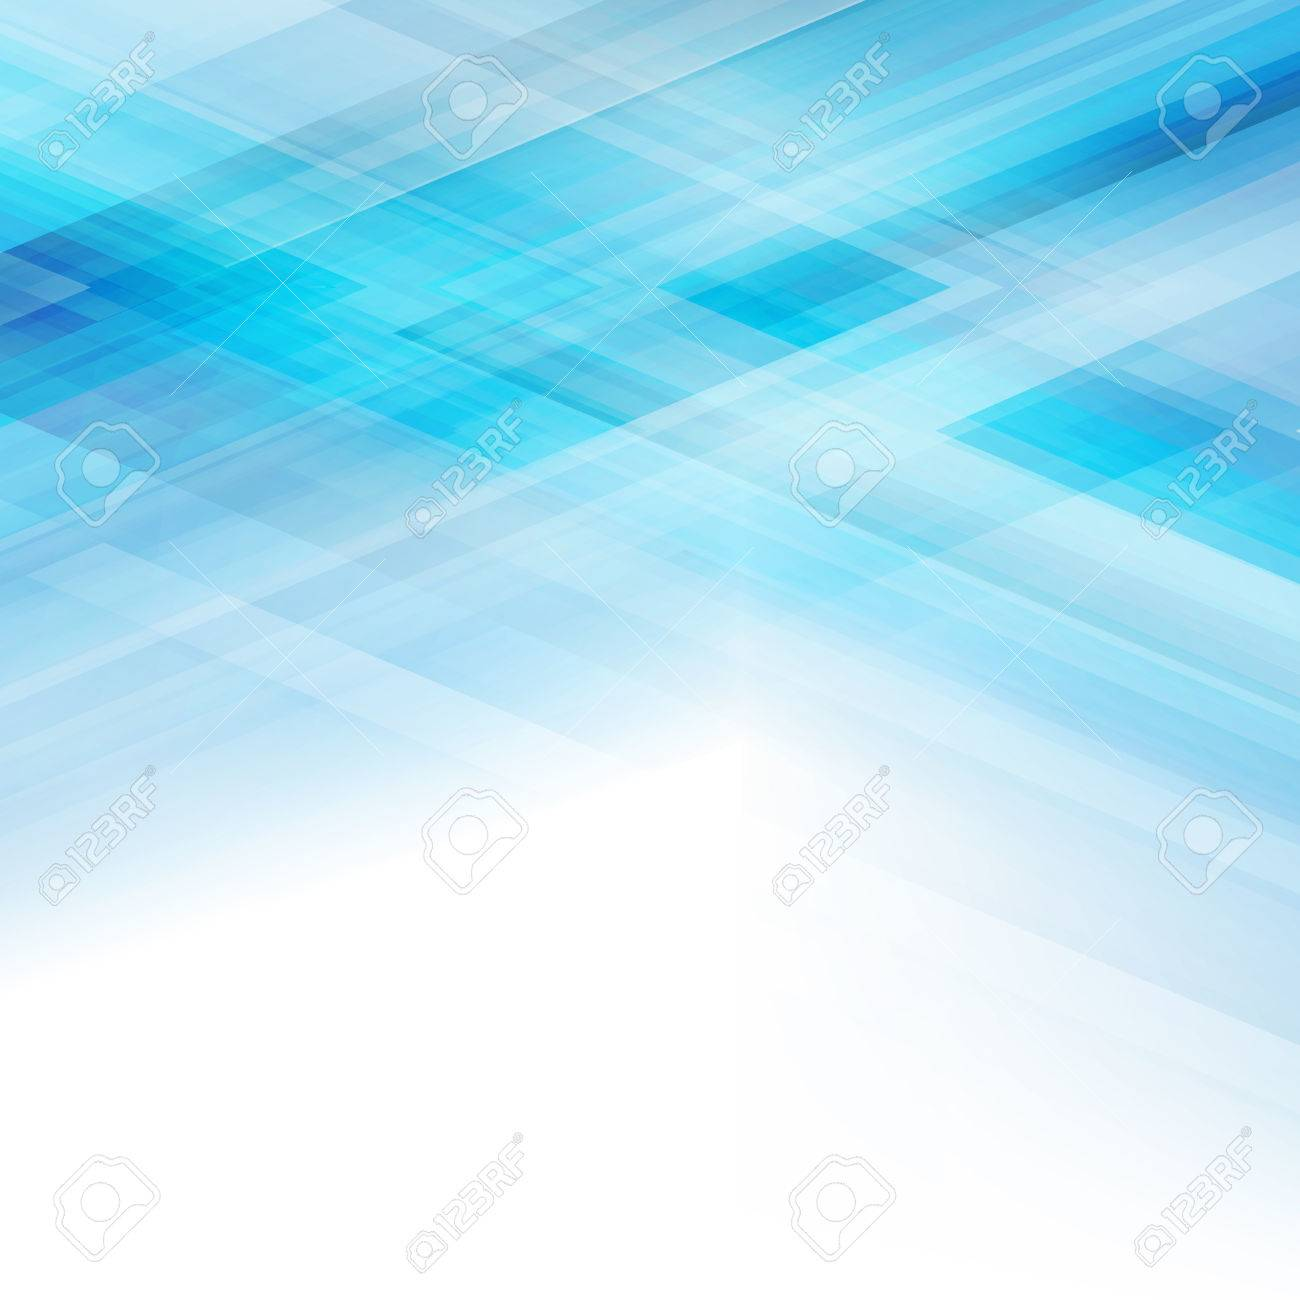 Abstract Background. A Template for Brochures, Covers etc. - 54344238